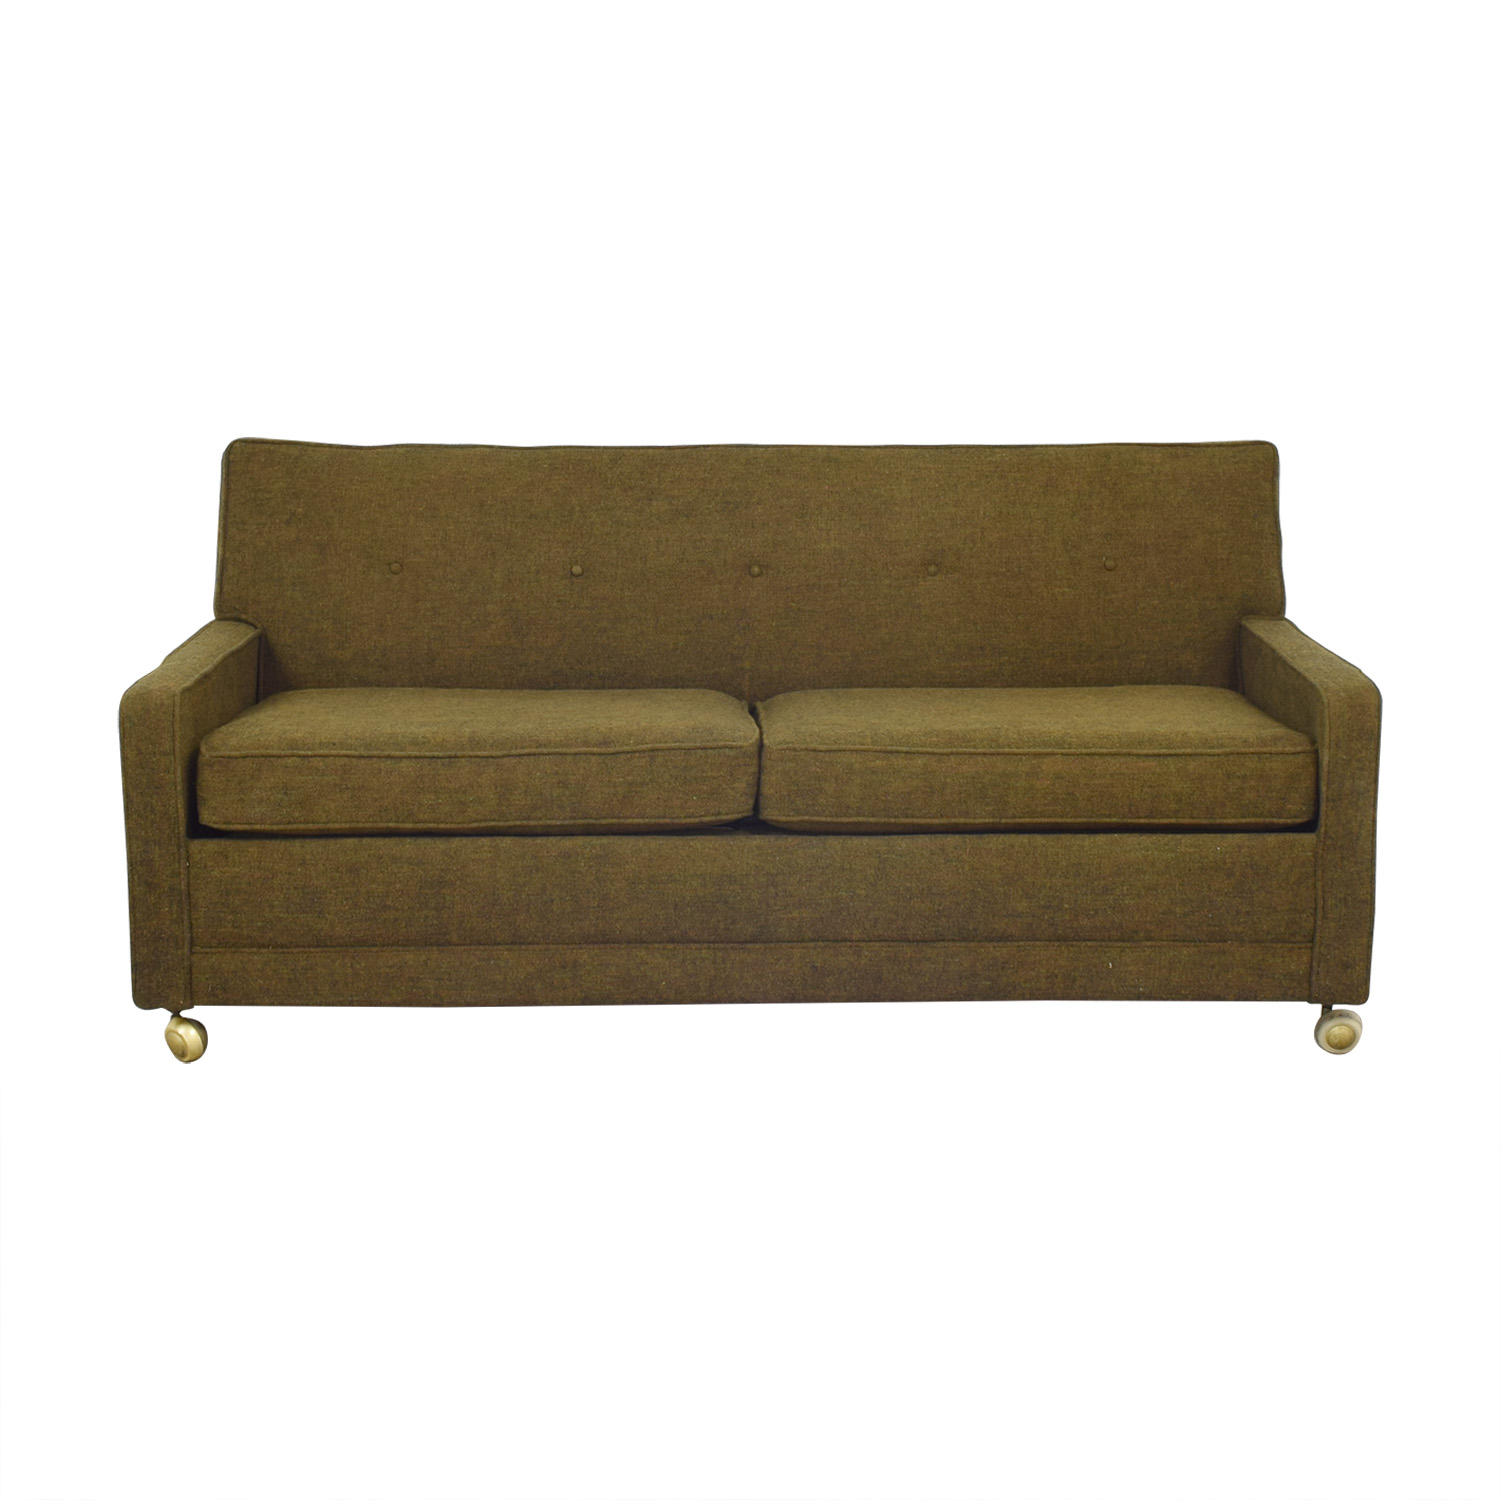 shop Two Seater Sofa Bed on Casters  Sofas